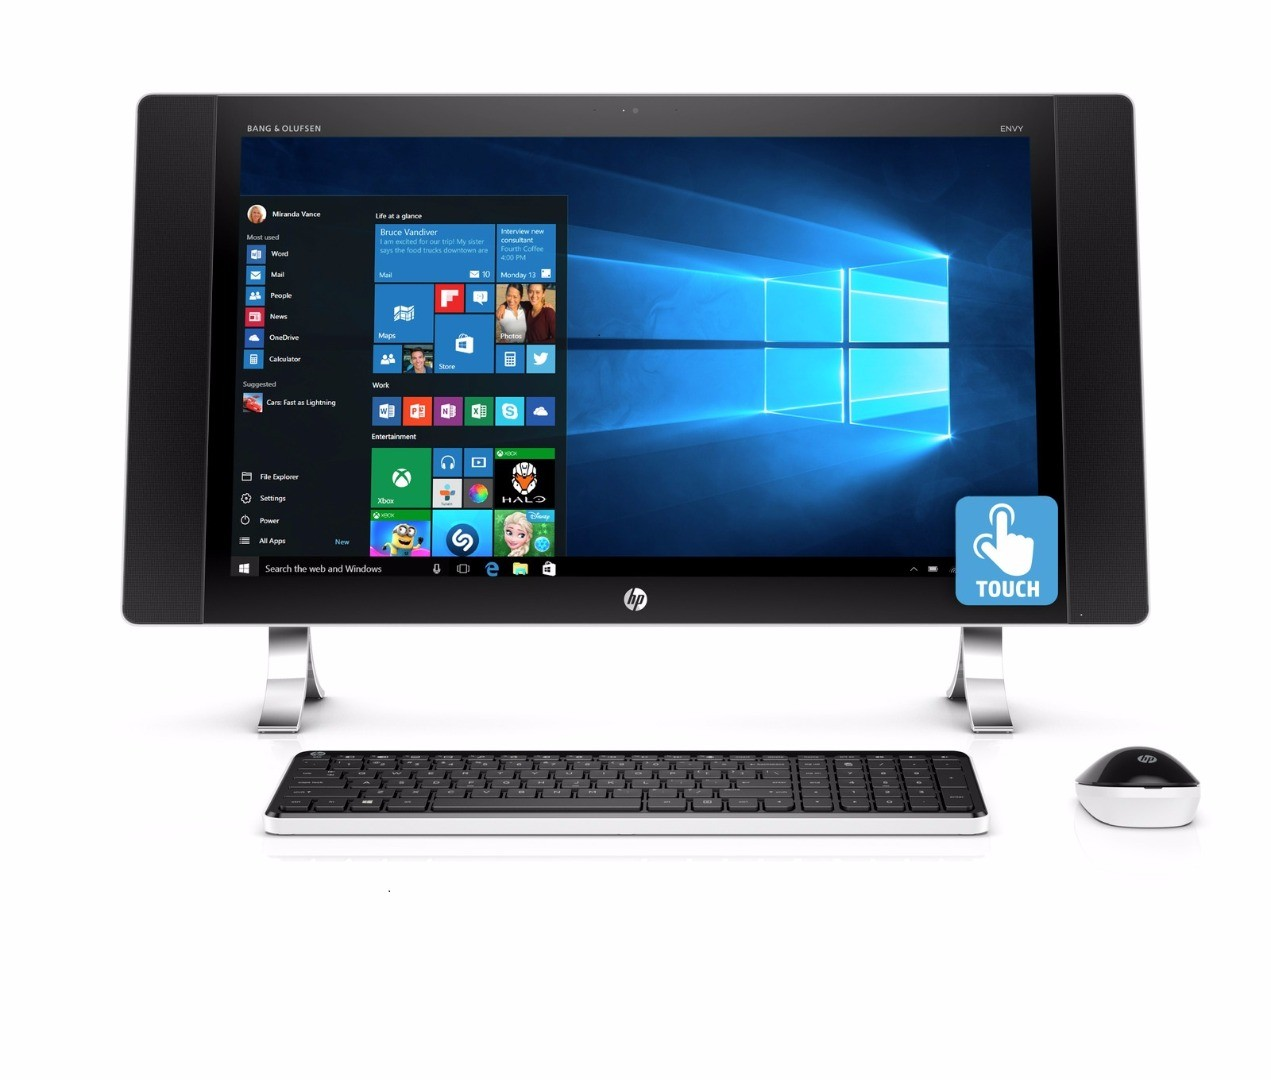 hp envy 27 p014 27 touch aio desktop intel i5 6400t 2 2ghz 12gb 1tb window 10 ebay. Black Bedroom Furniture Sets. Home Design Ideas